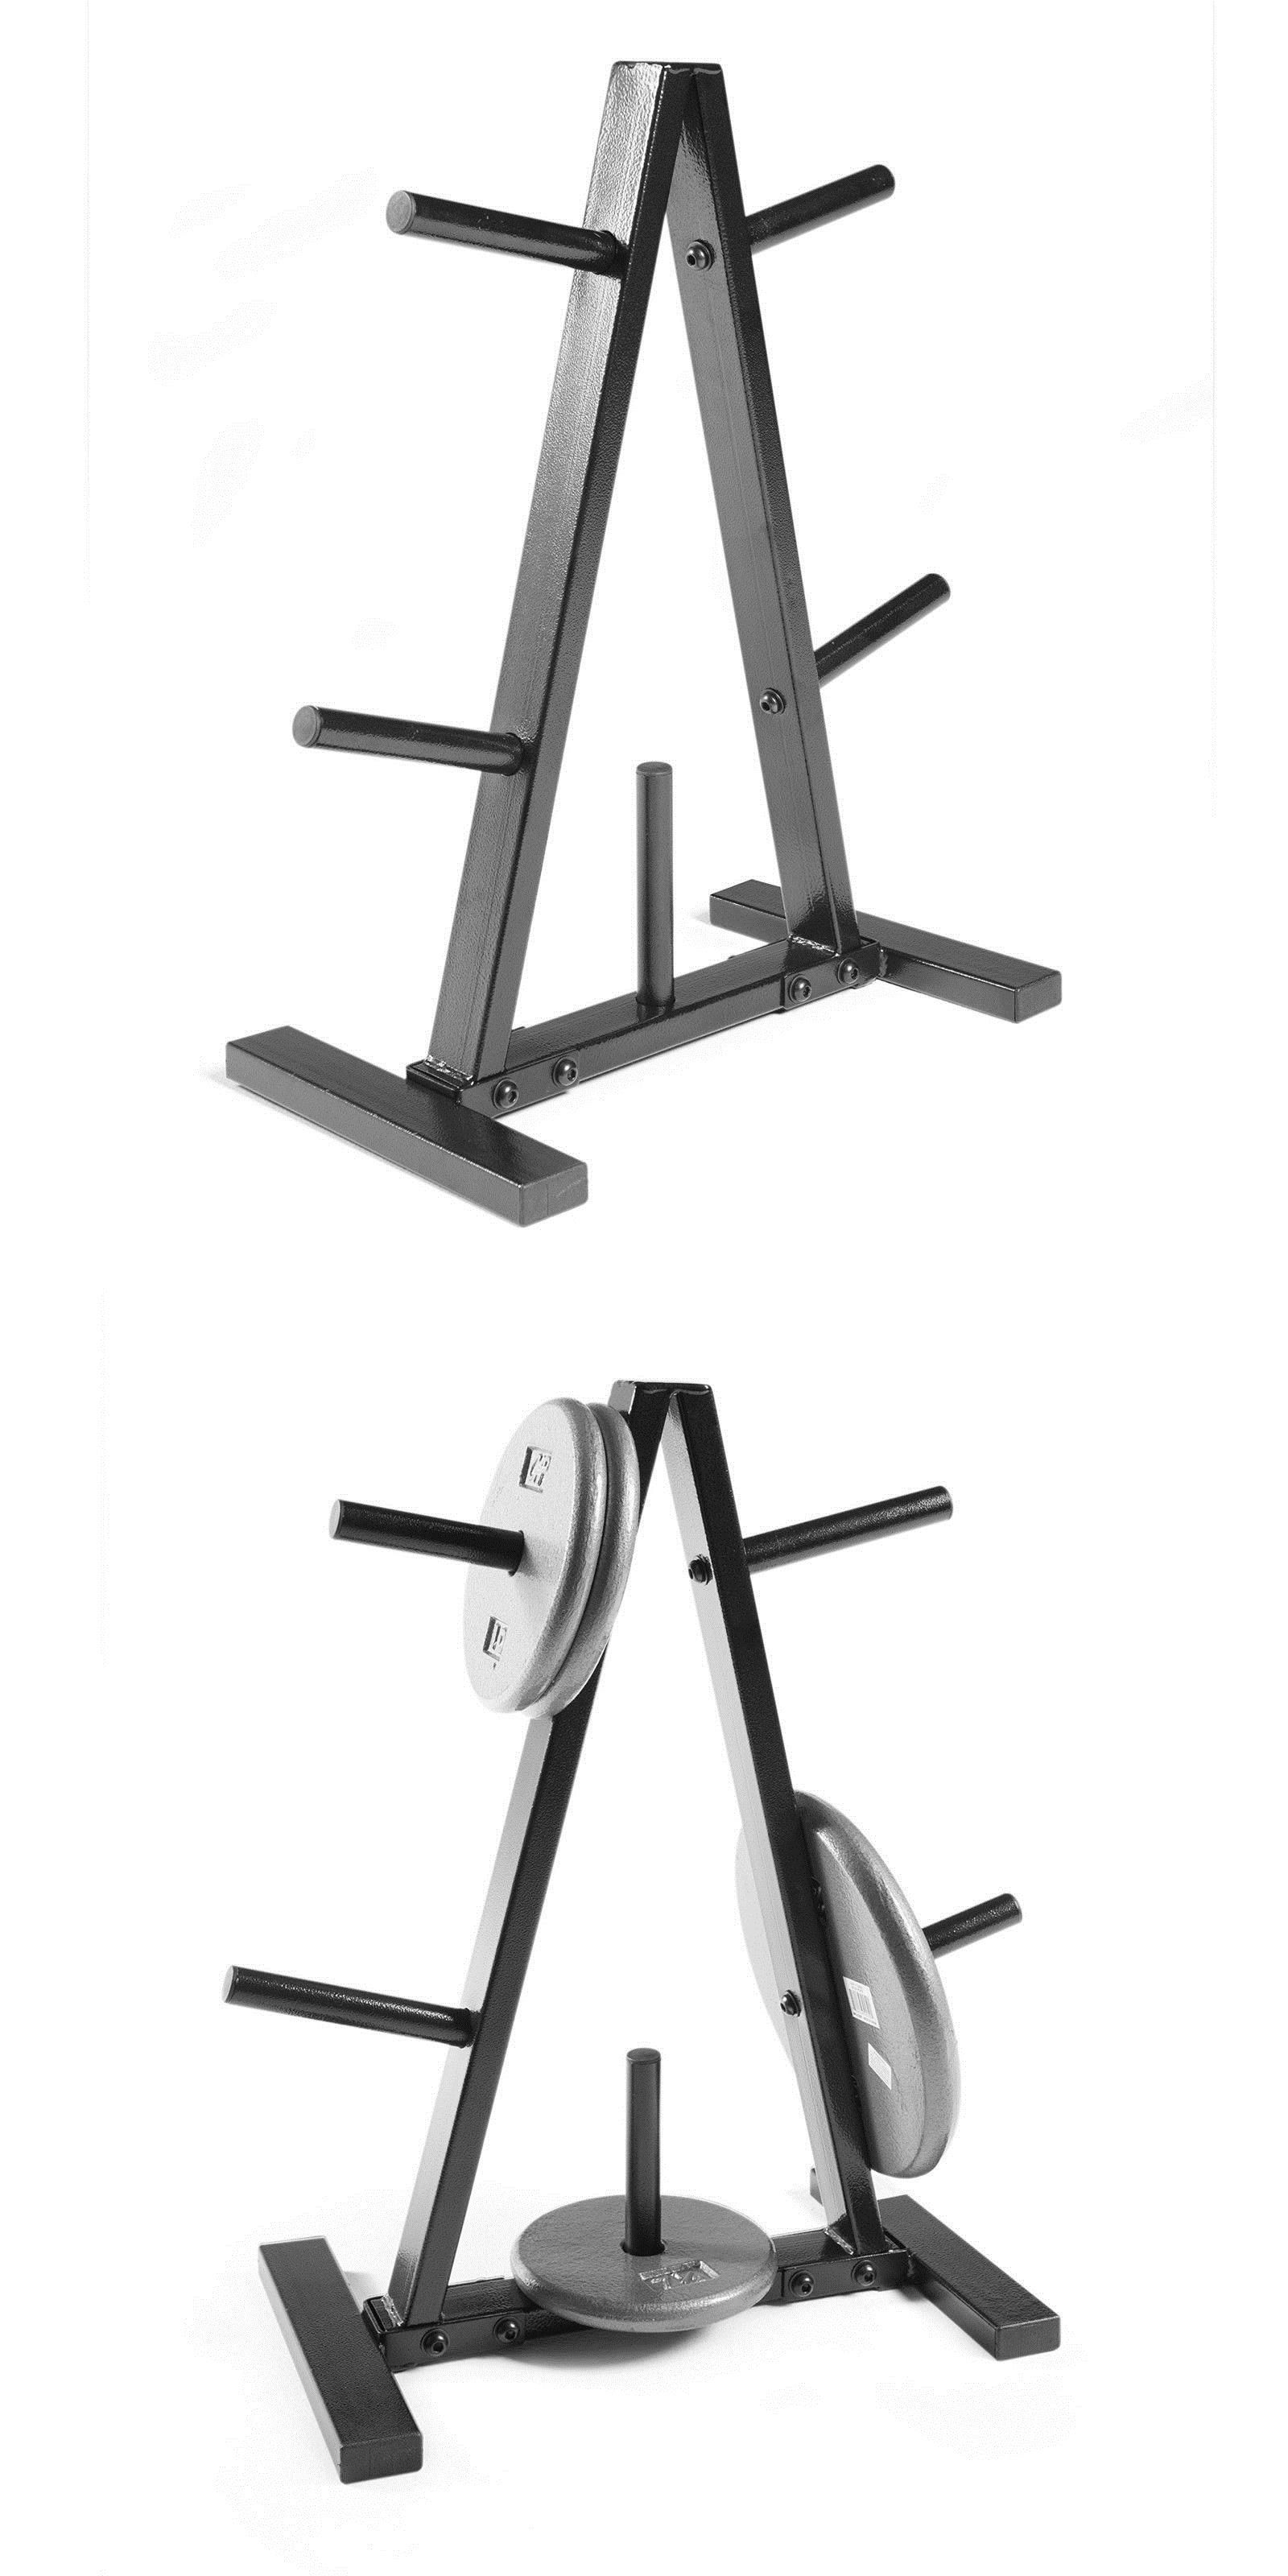 weight storage ttcz half nantong press product rock detail multi power squat with plate rack